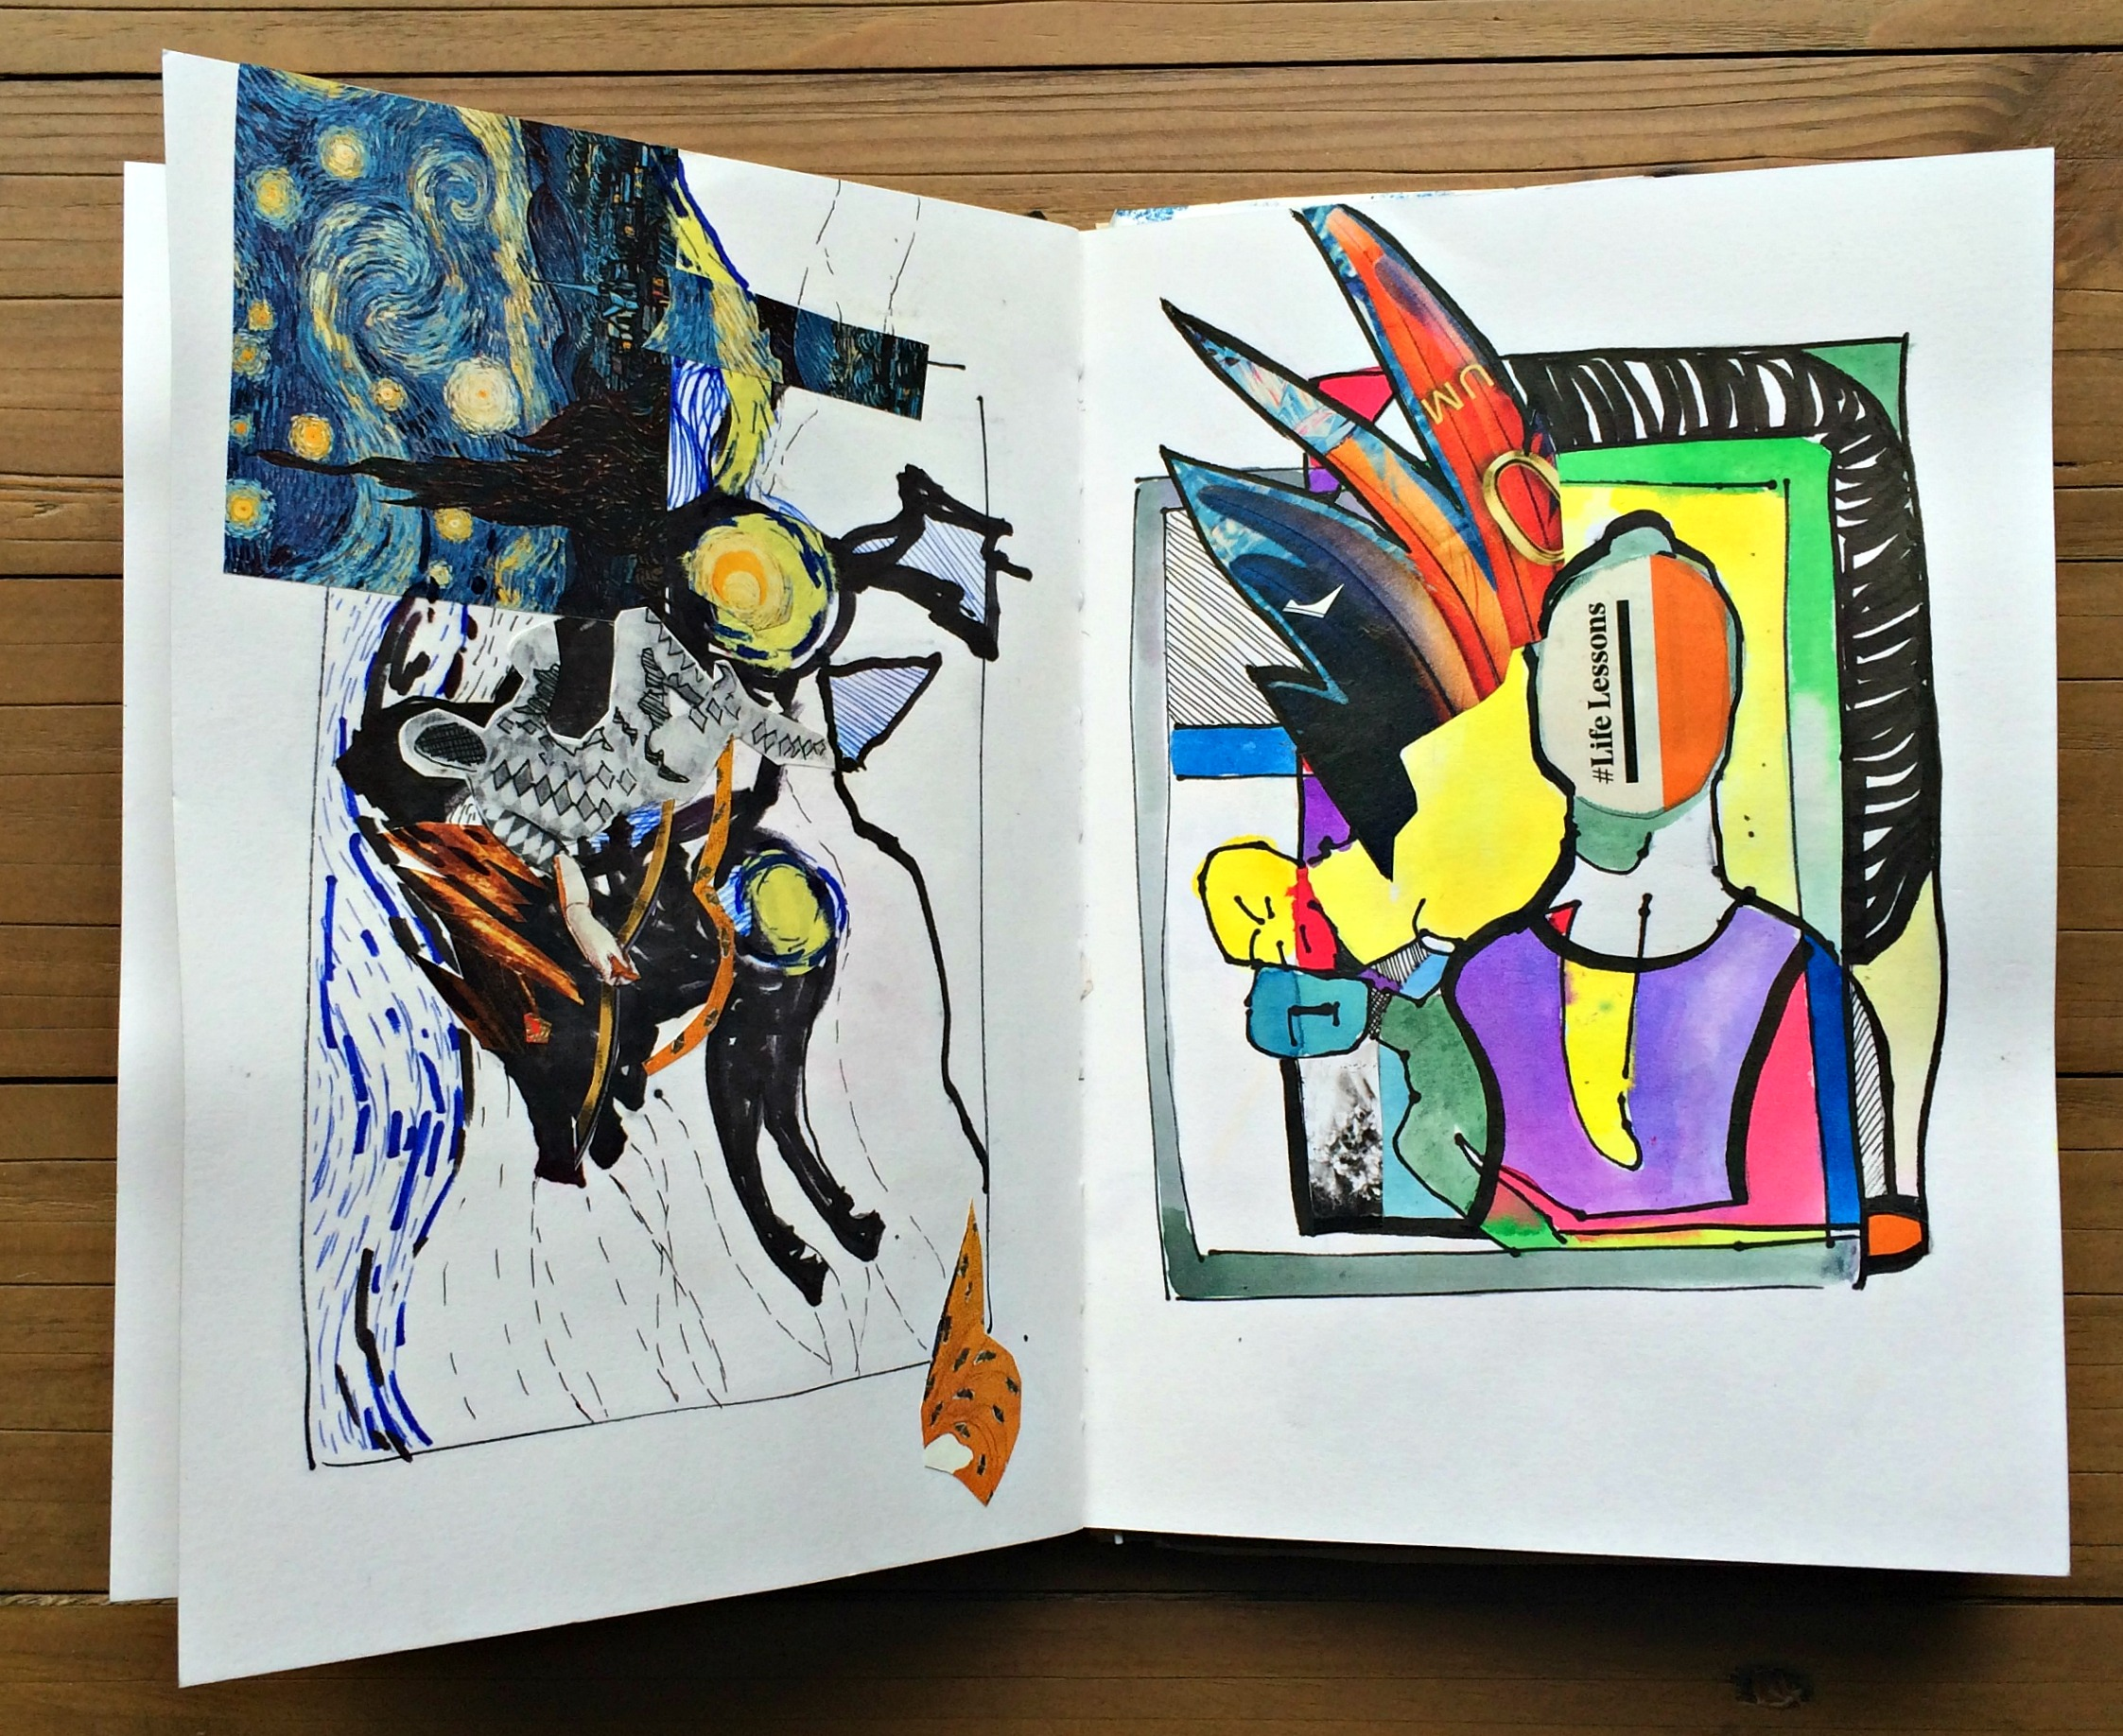 Sketchbook 1: layered sketches collaged & coloured